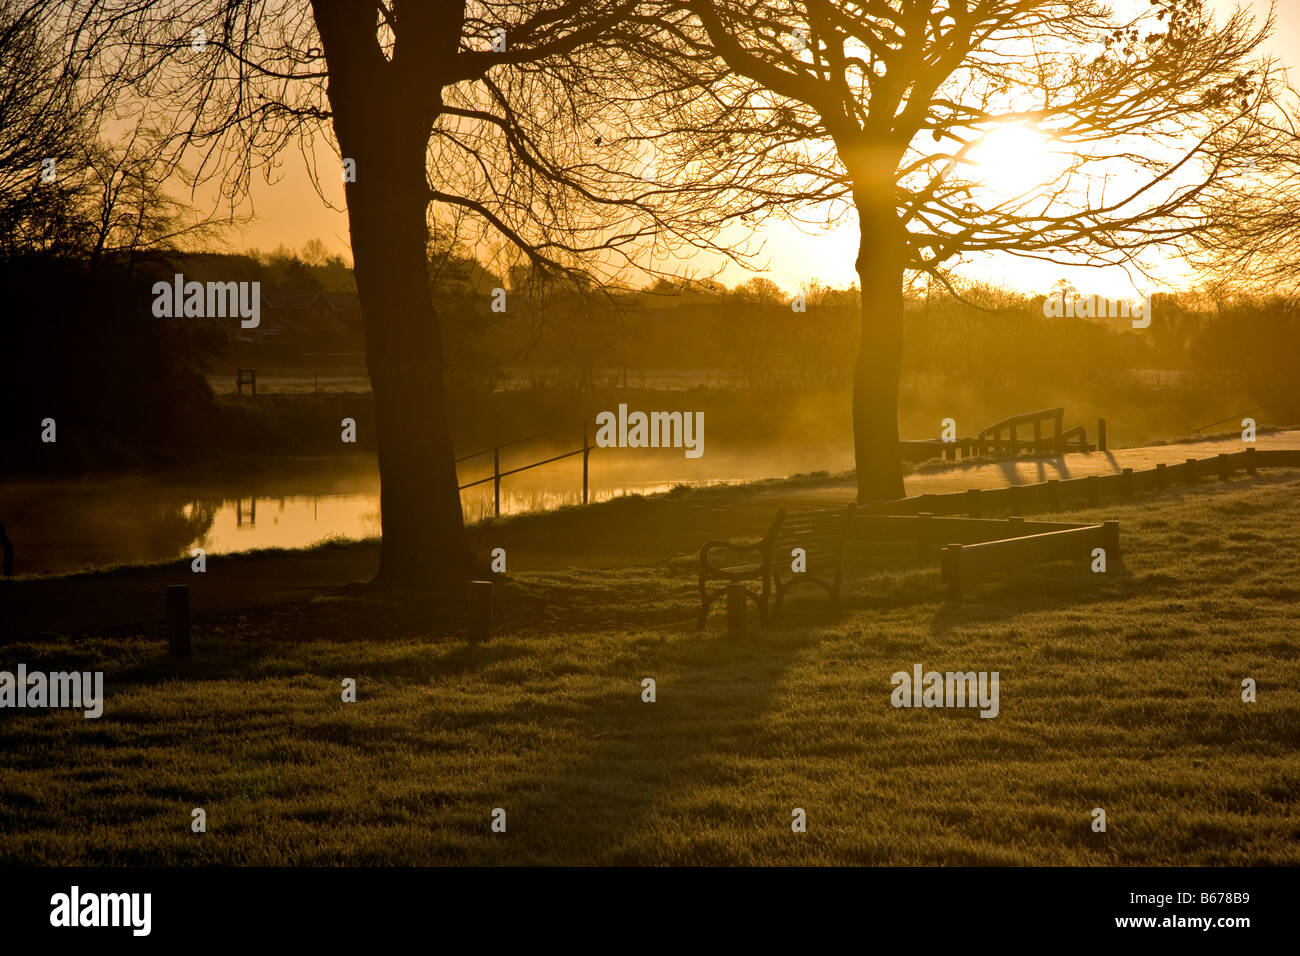 Sunrise on the banks of the River Bann, Portadown, on a frosty winter's morning - Stock Image